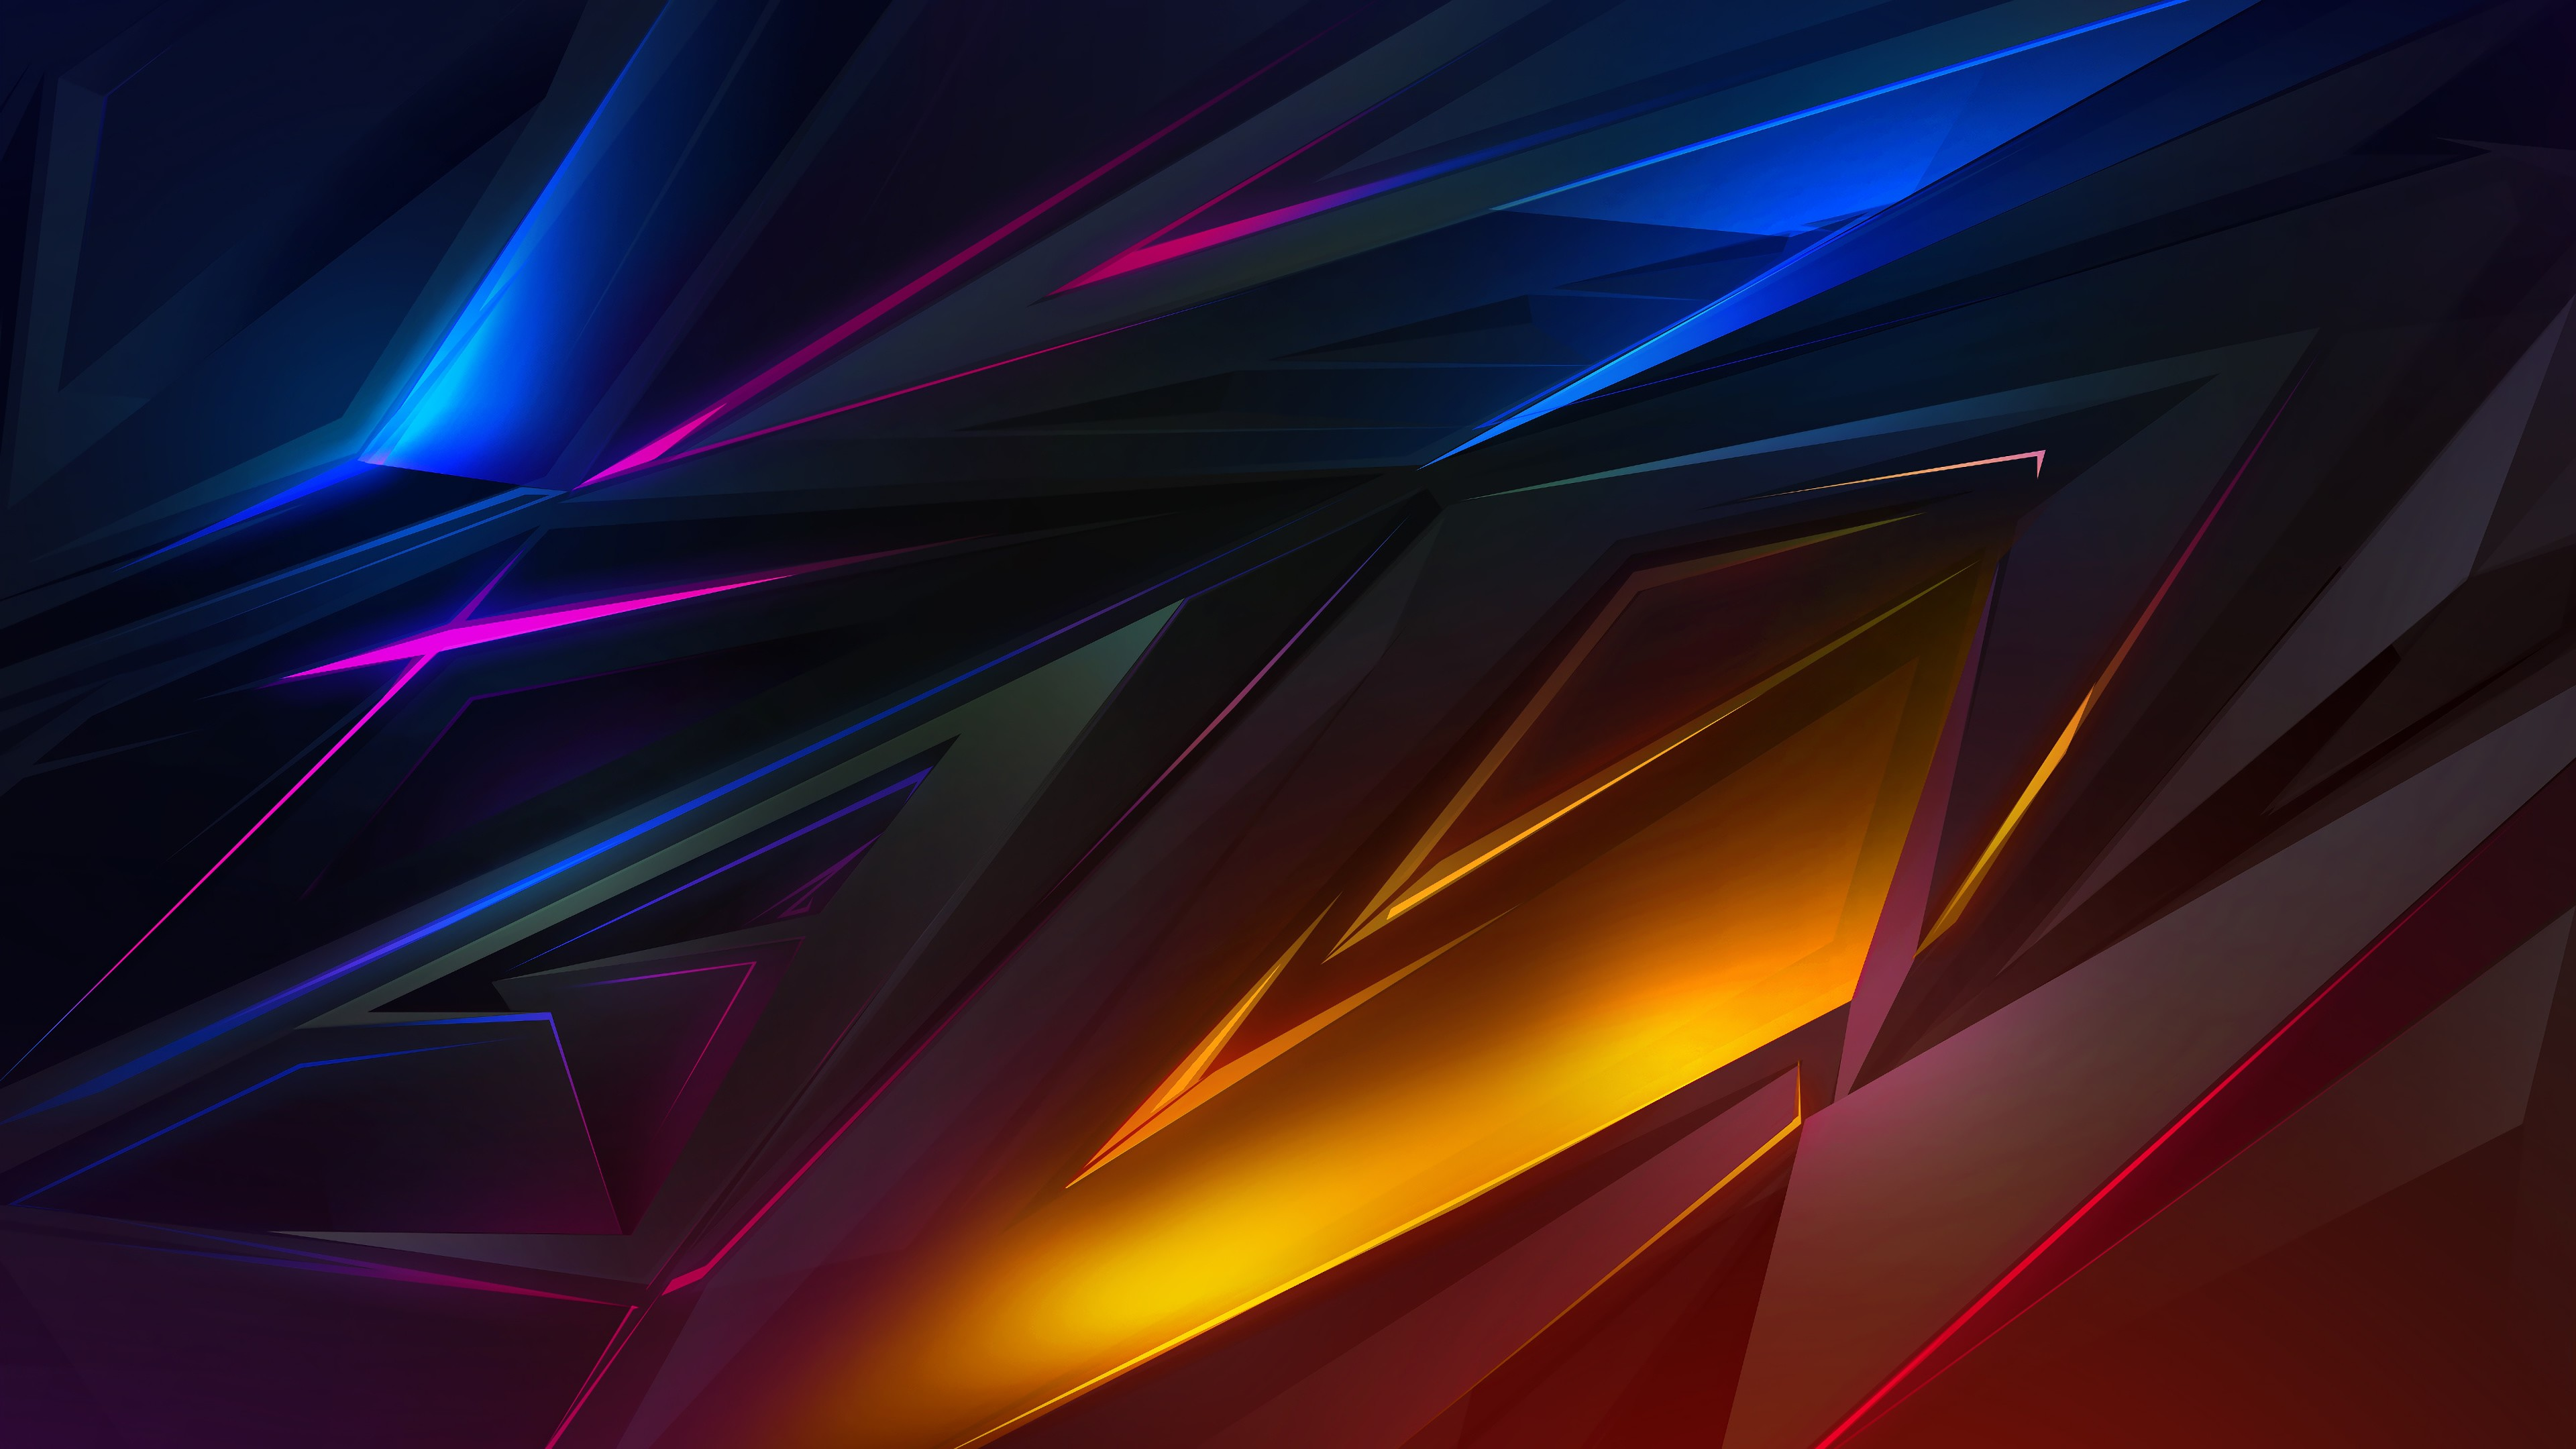 Abstract Polygons Fondo De Pantalla 4k Ultra Hd Id3089